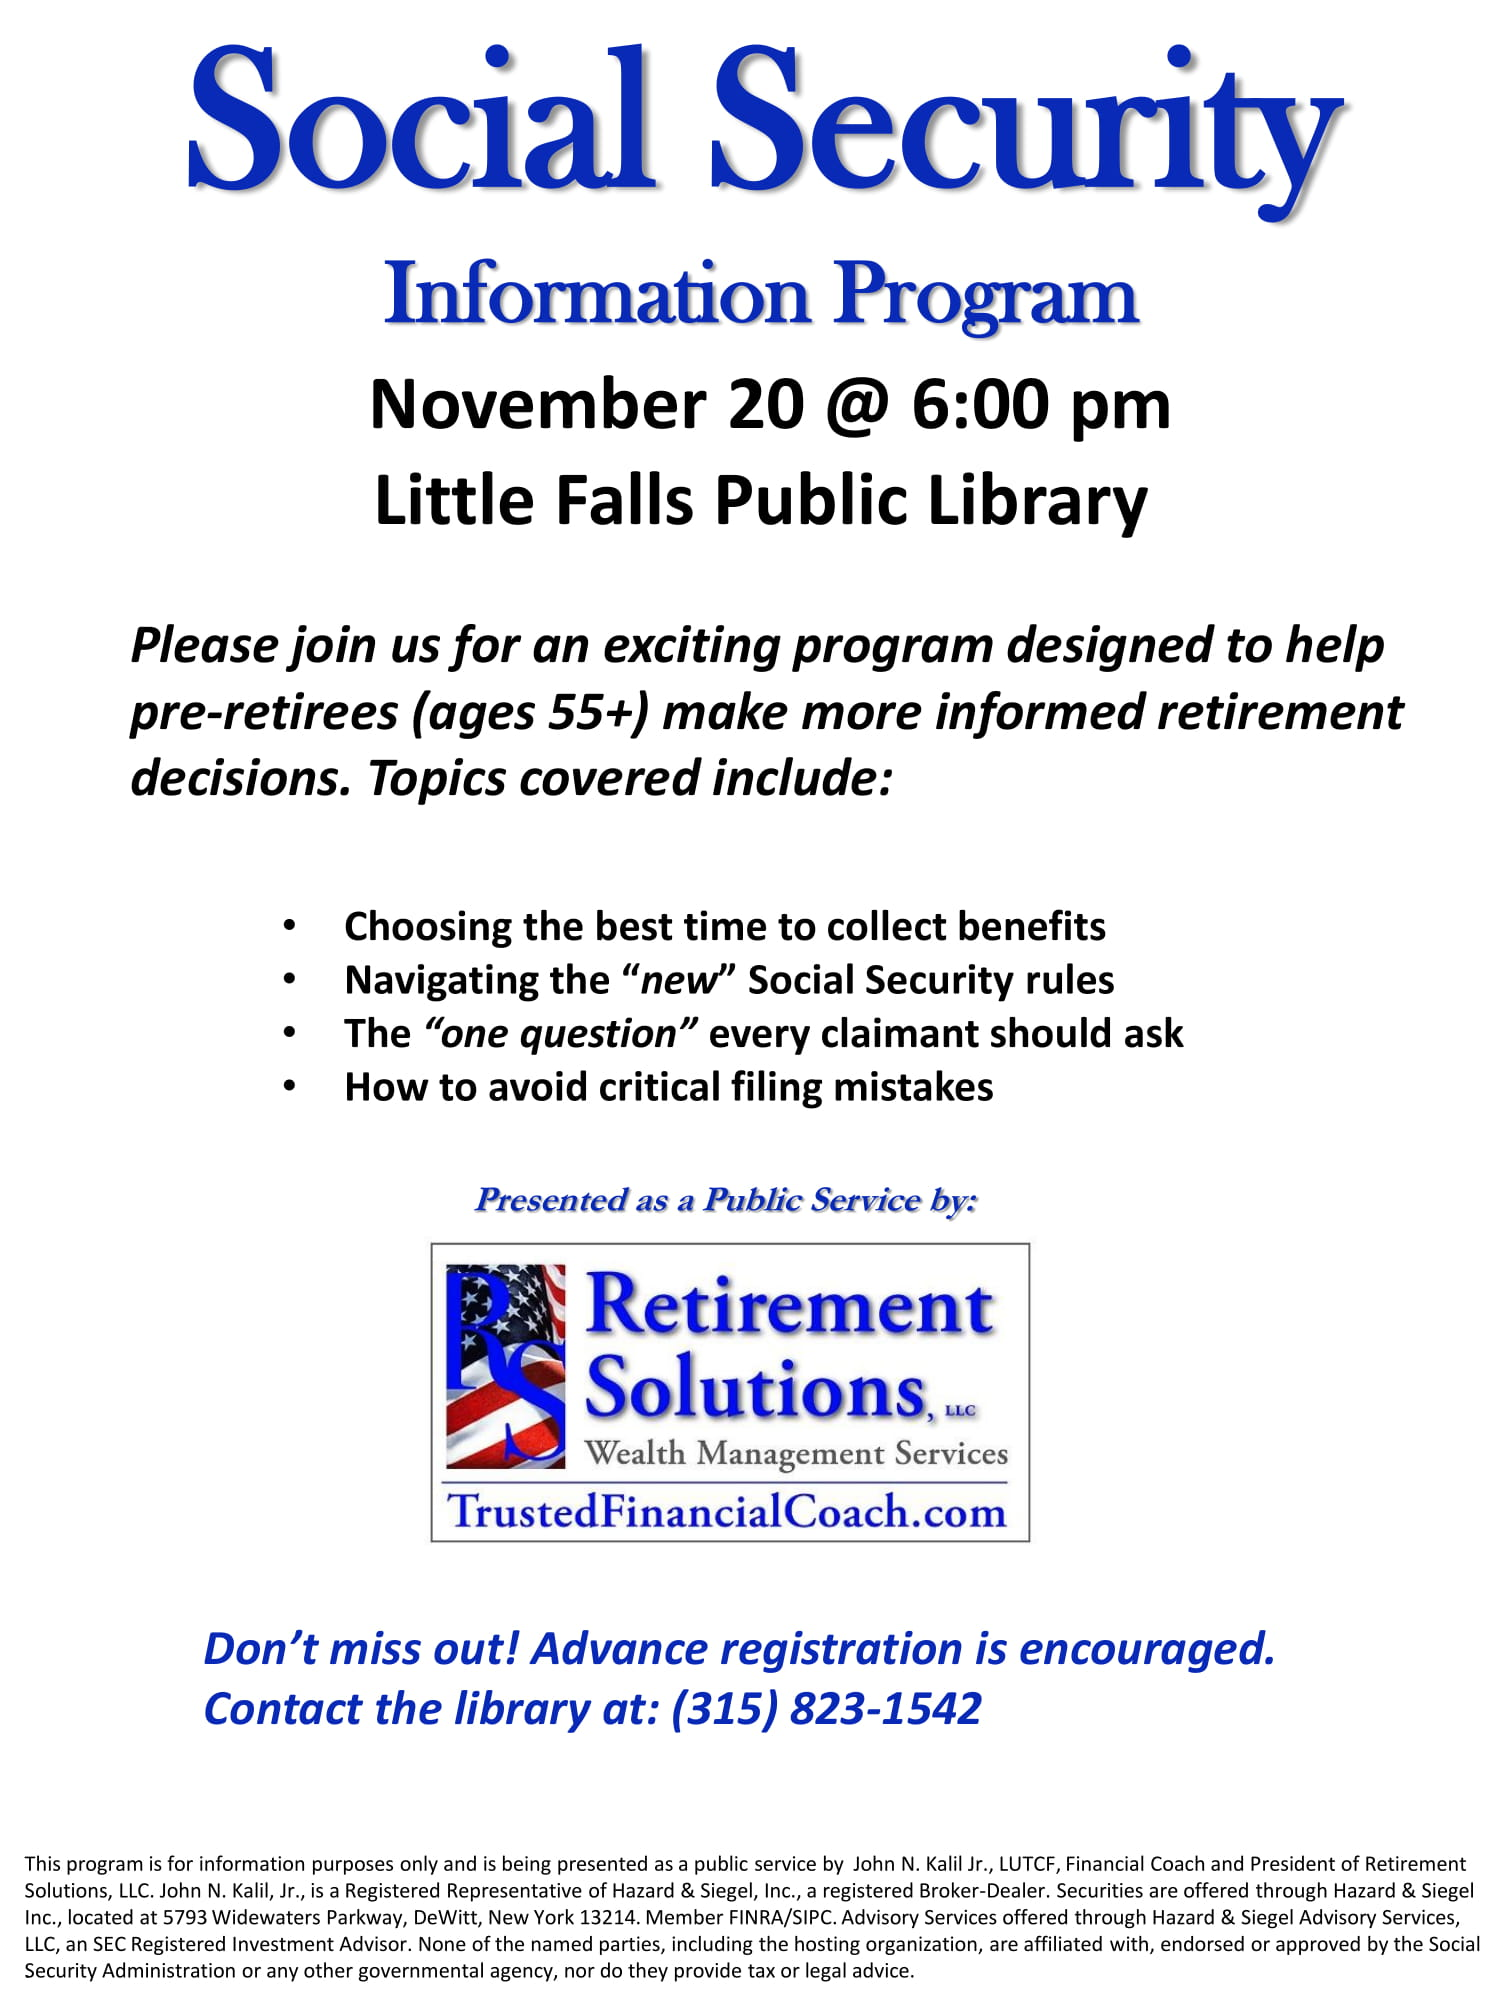 Social Security Information Program The Little Falls Public Library